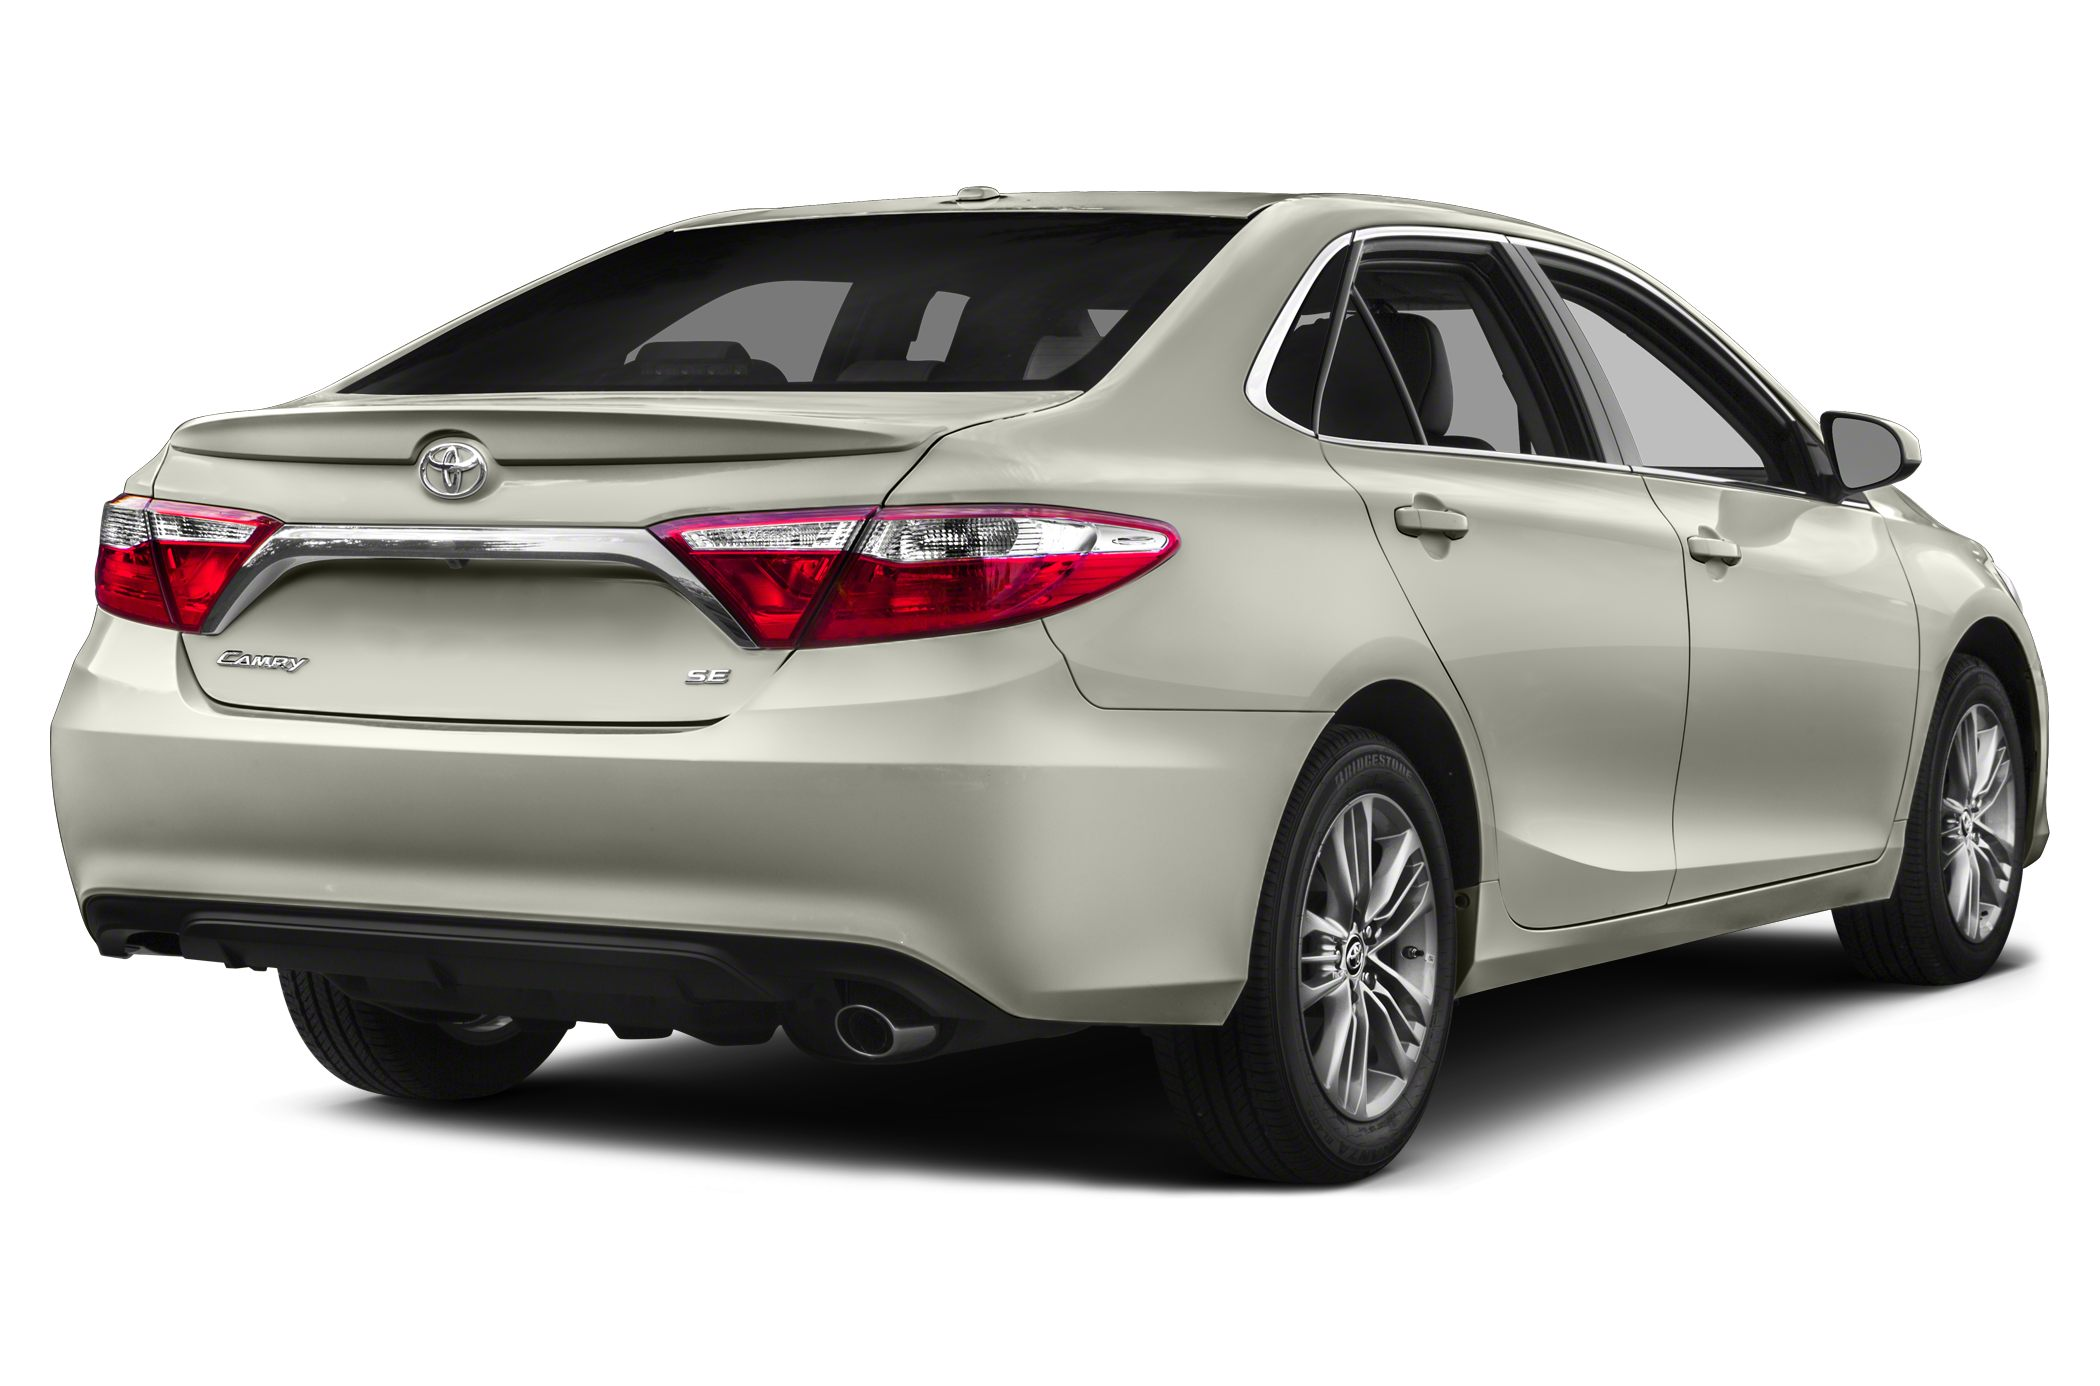 2017 Toyota Camry SE 3-DAY EXCHANGEONE PRICE STOP NO HASSLE NO HAGGLE CAR BUYING EXPERIENCE